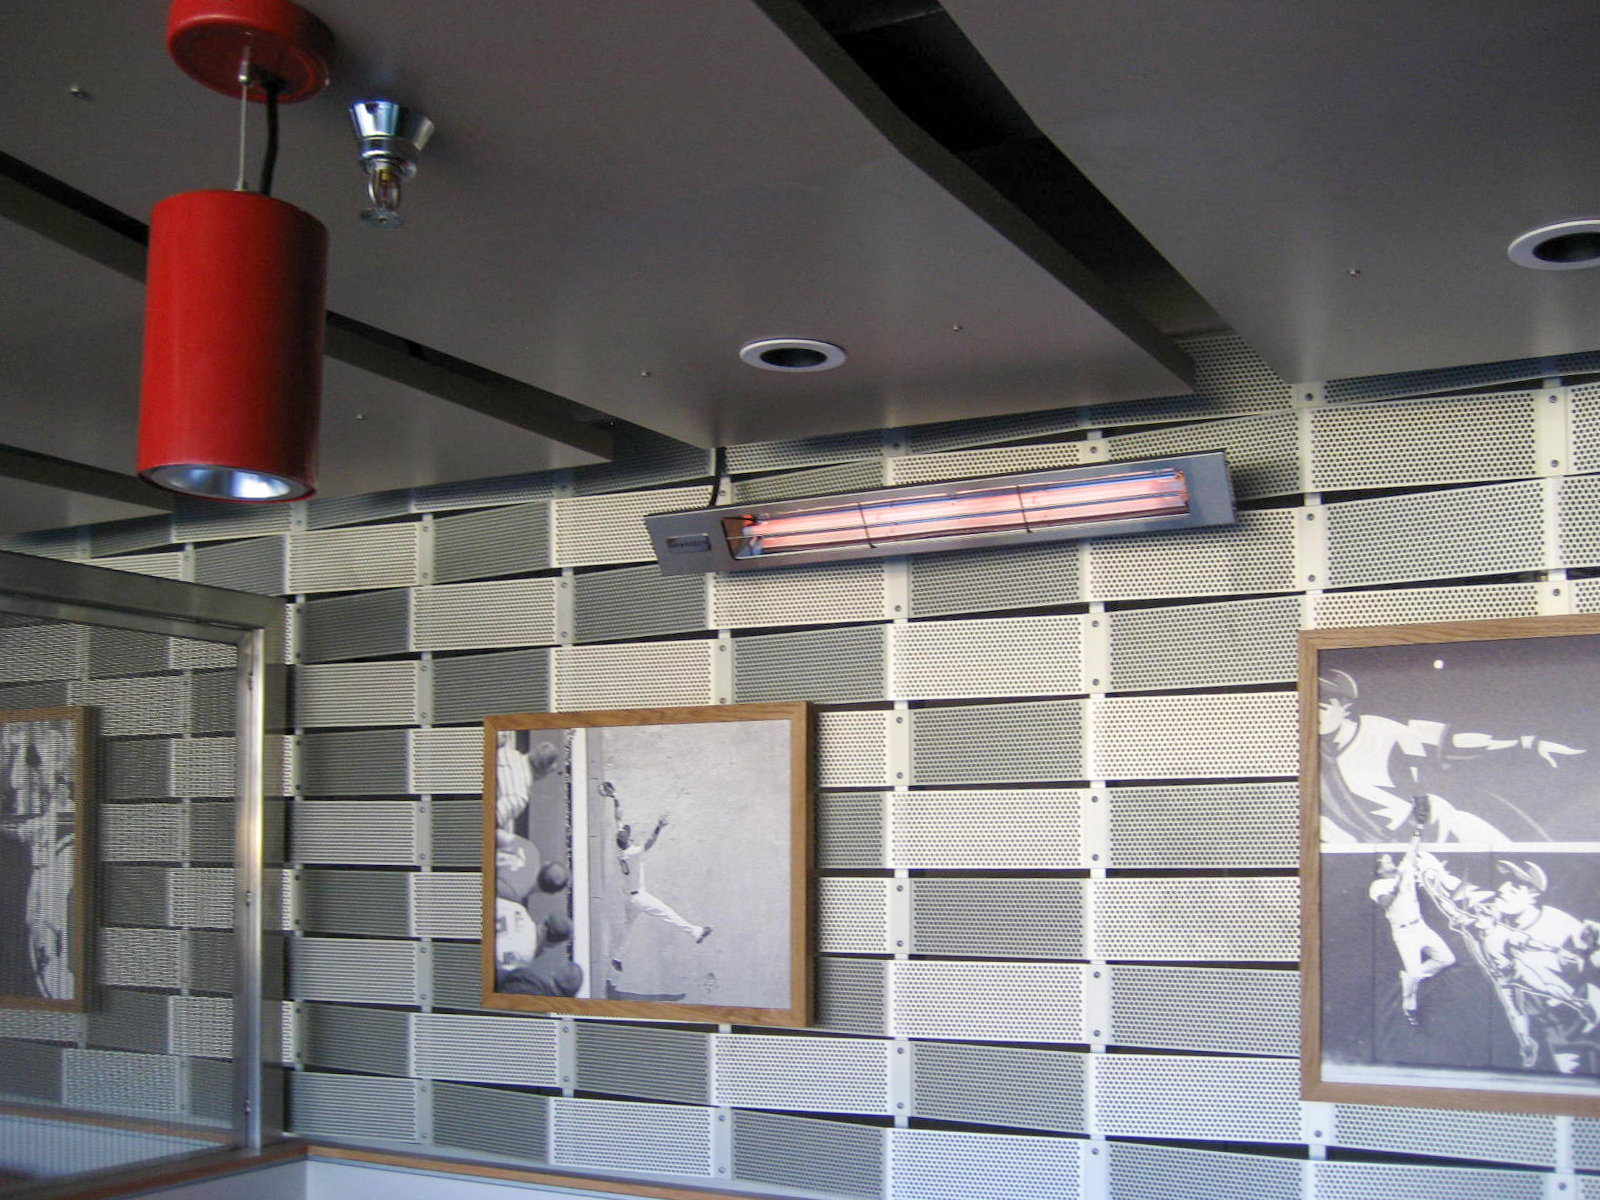 The outdoor bars areas at Target Field feature our W-Series infrared heaters to provide fans with a comfortable atmosphere while enjoying the game.